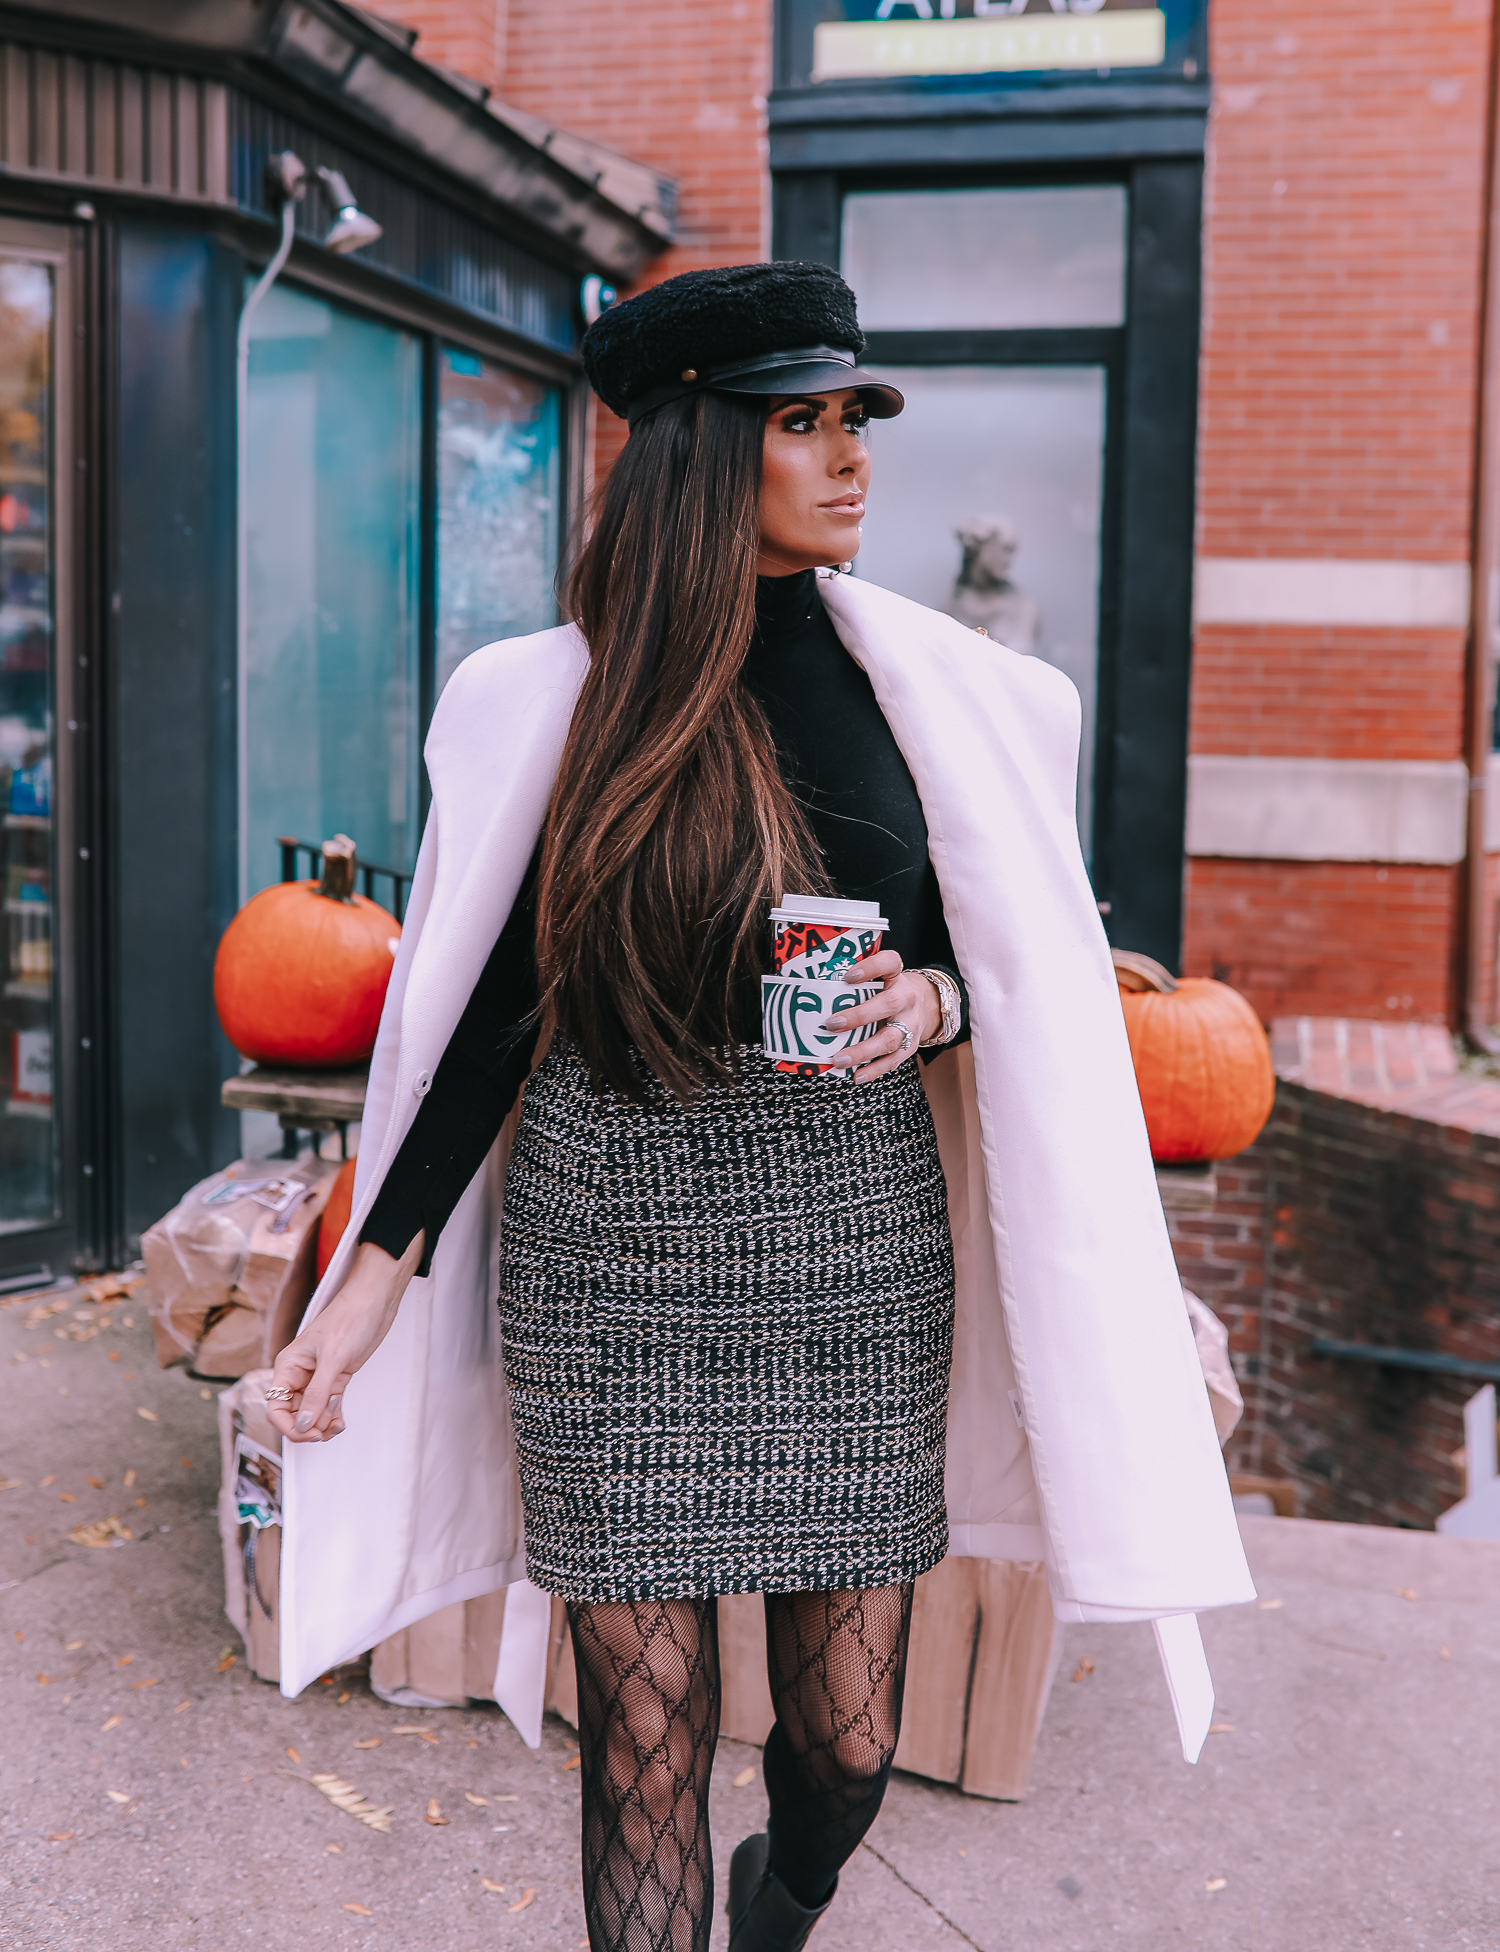 Most Popular Outfits On Sale That I've Worn - All 50% Off! by popular Oklahoma fashion blog, The Sweetest Thing: image of a woman wearing a white wrap coat and tweed skirt.